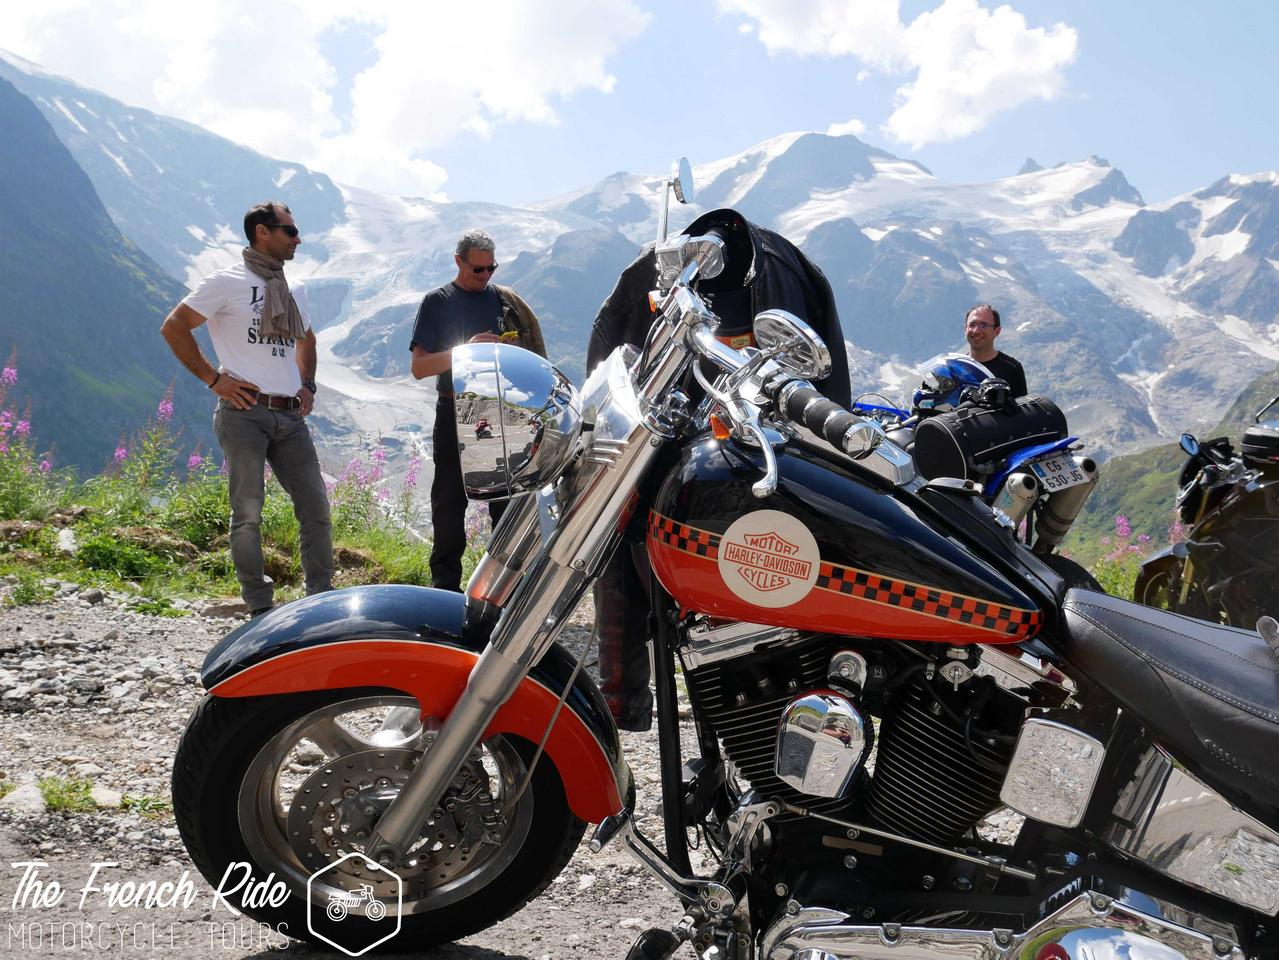 Grand Alps motorcycle tour in the great alpine road. Guided and self-guided motorcycle tour and rental in the Alps, France, Switzerland and Italy.